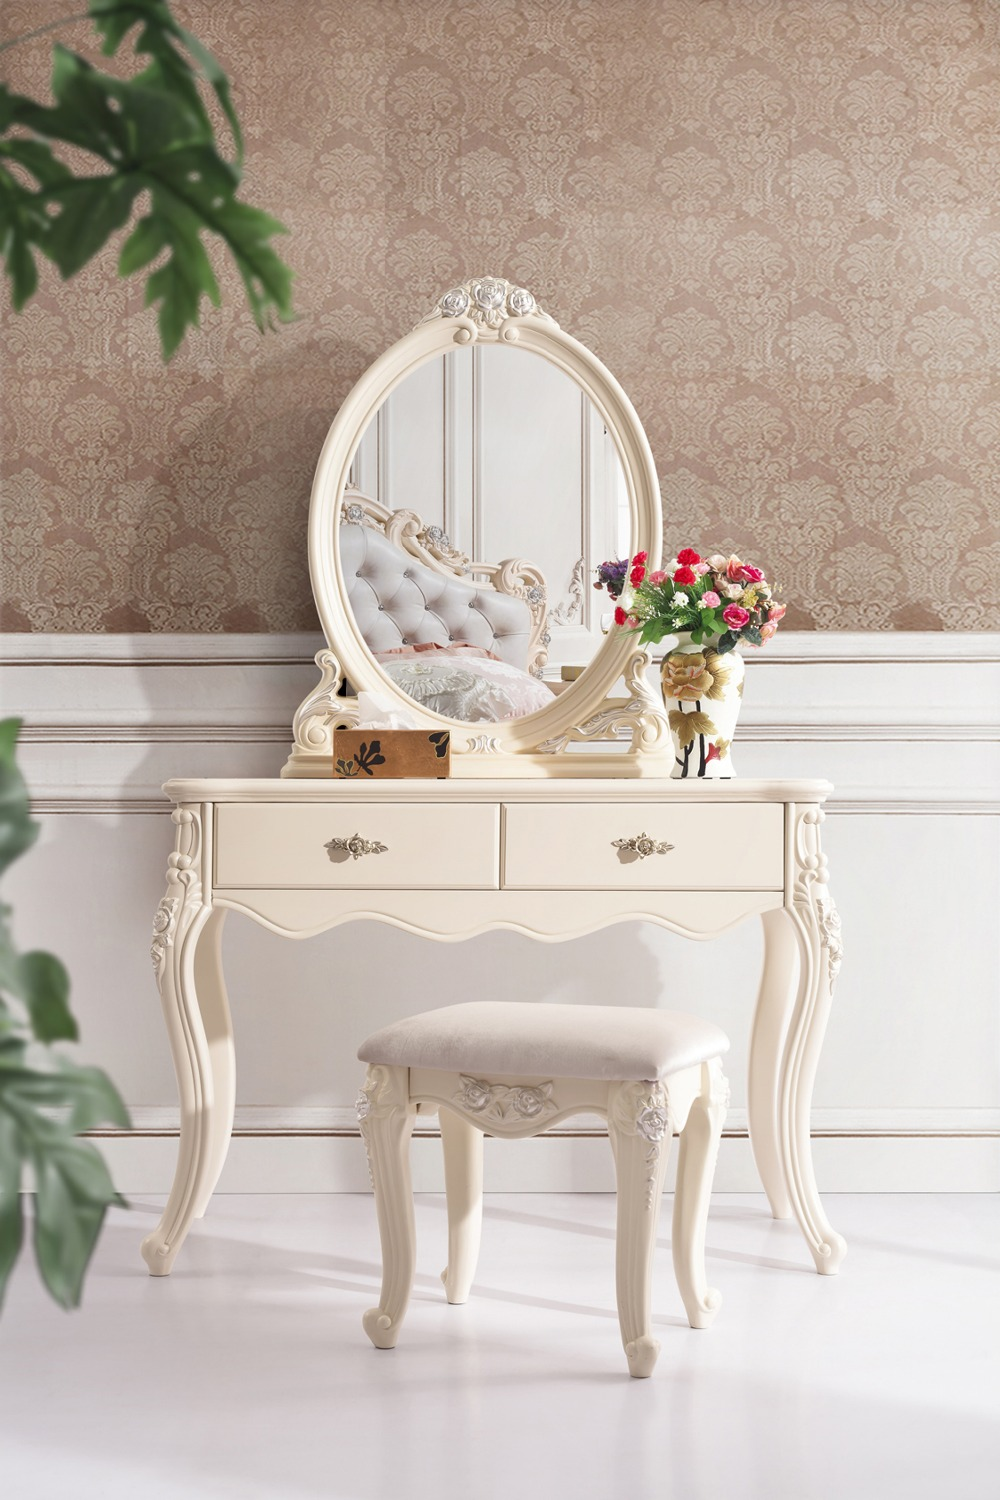 popular oak table chairs buy cheap oak table chairs lots from modern bedroom set high class european style dressing table dresser with stool chair hand carved solid wood bedroom furniture